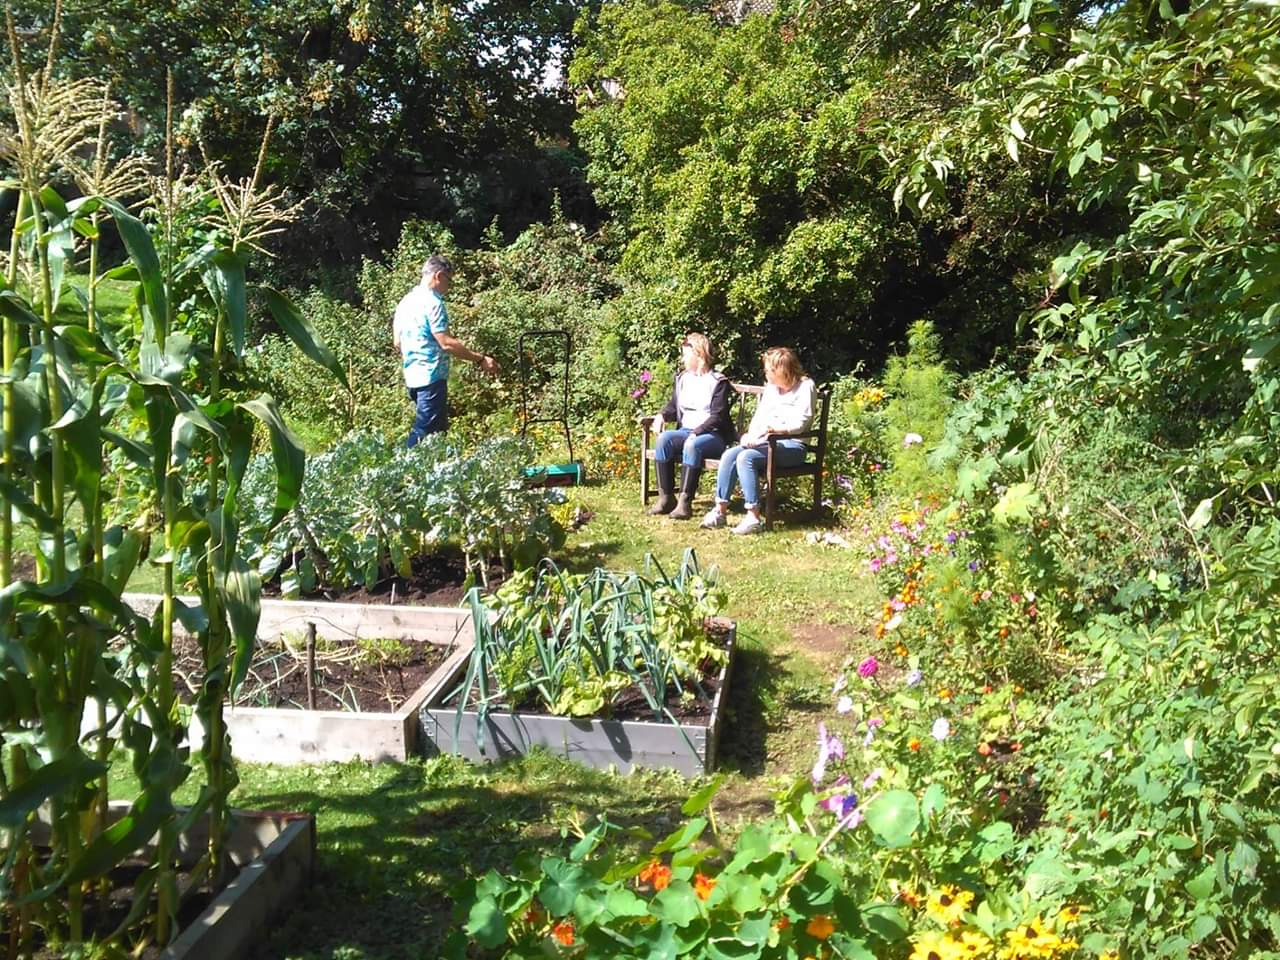 Peacehaven Community Garden